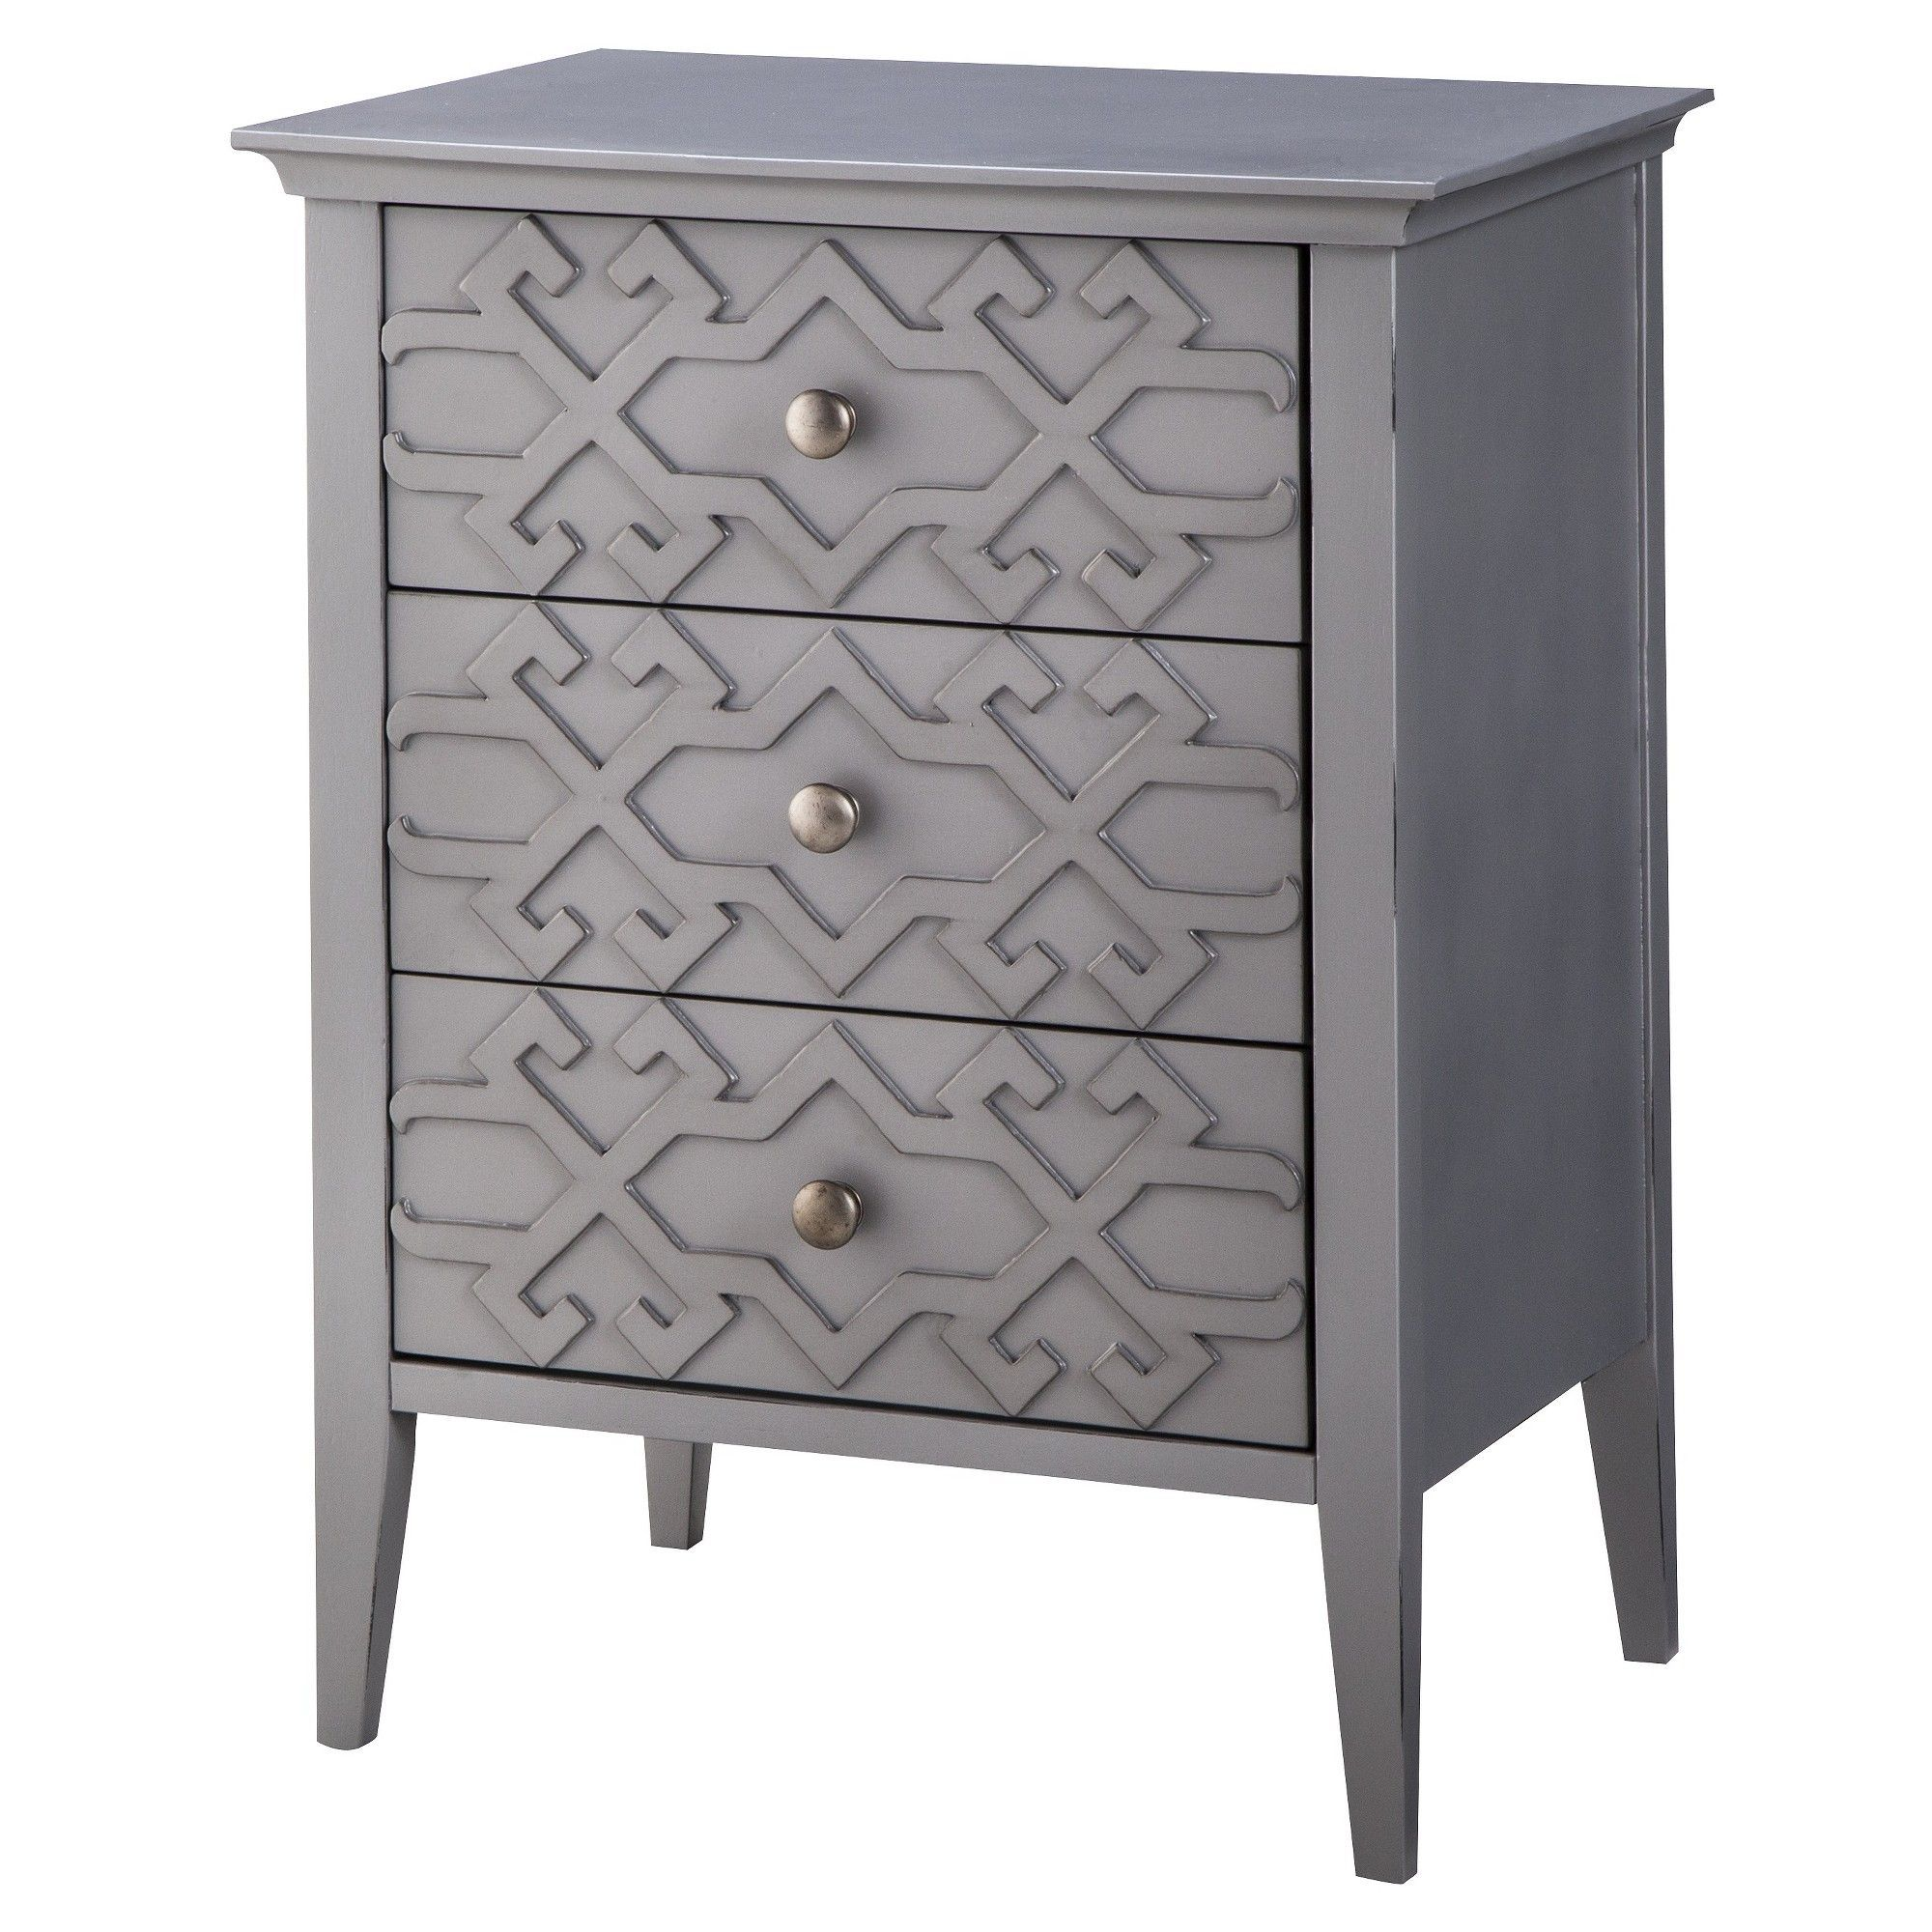 fretwork accent table threshold gray products owings pier one seat cushions asian lamp shade hardwood floor designer end tables retro kitchen chairs chargers hayworth white vinyl